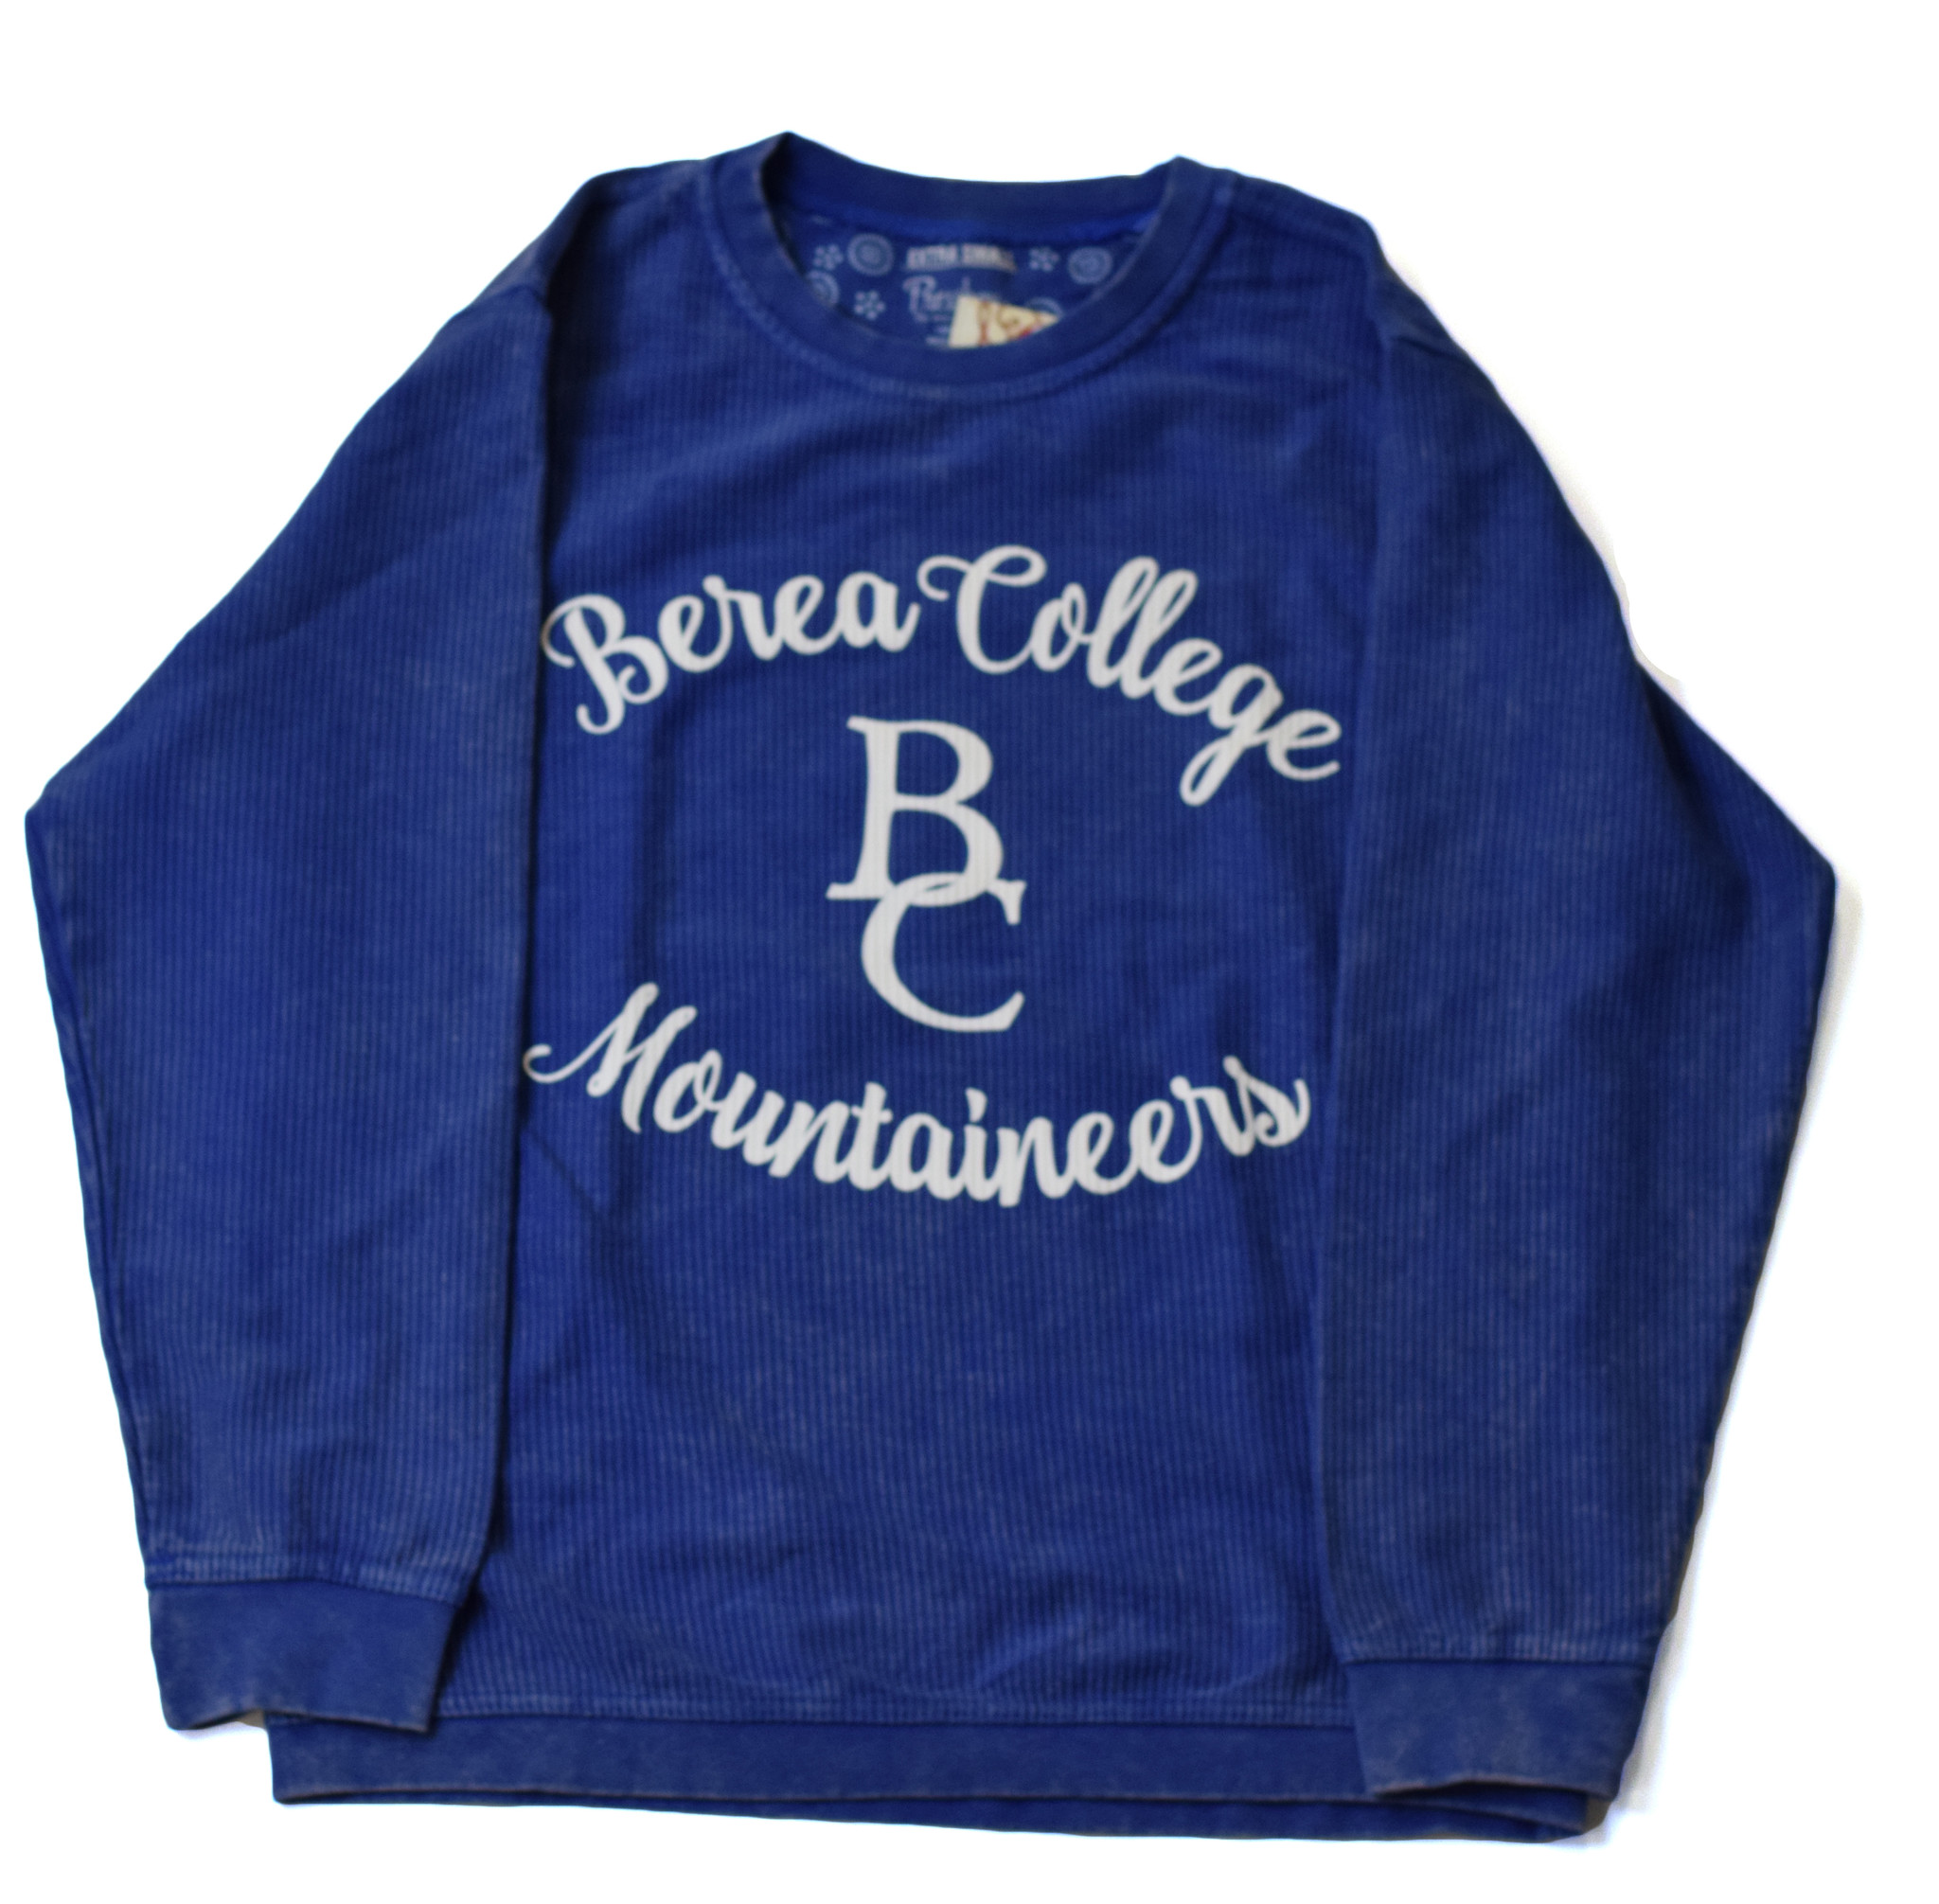 Berea College BC Mountaineers Crewneck-1